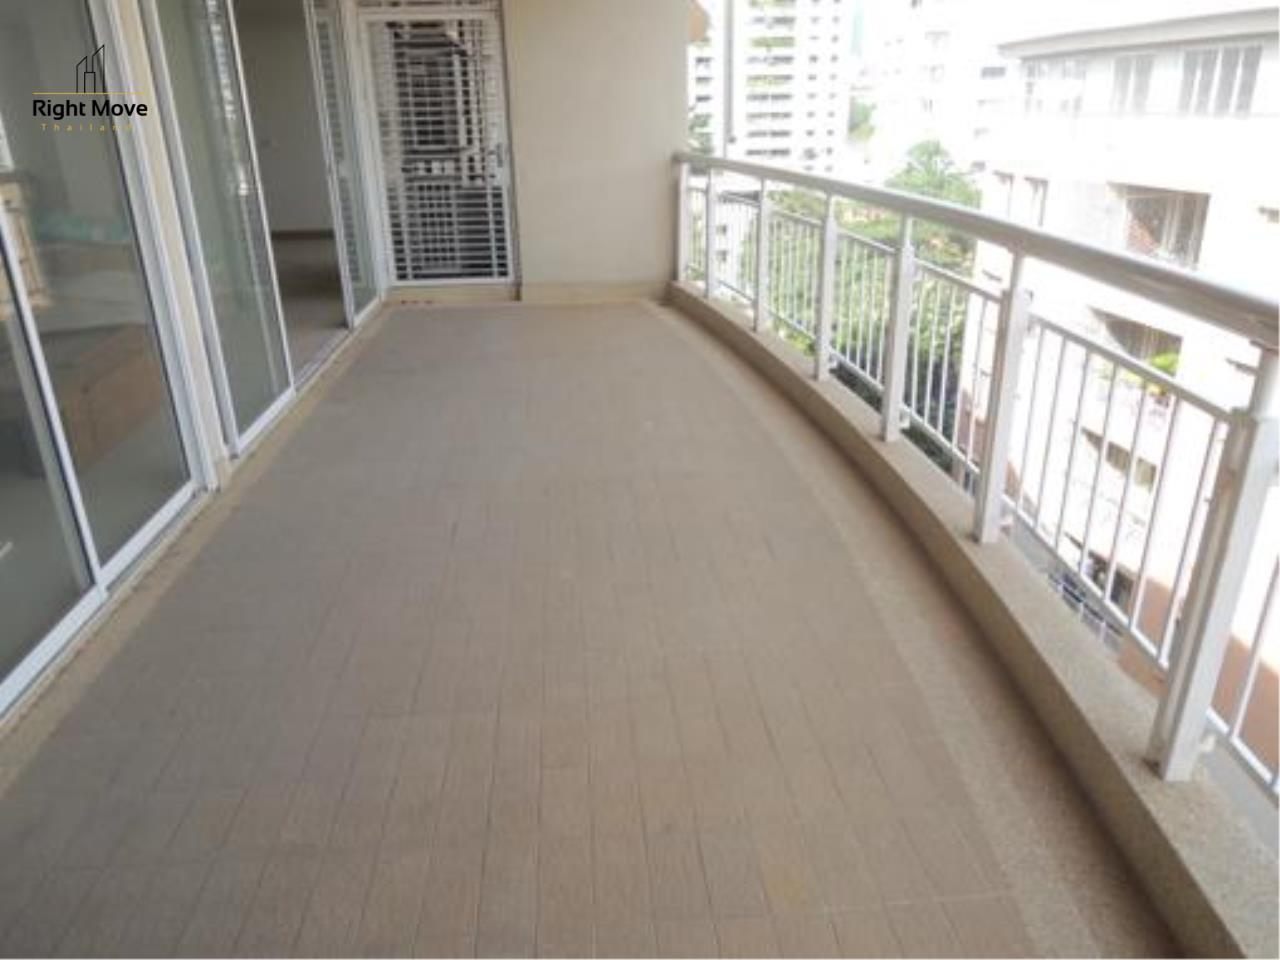 Right Move Thailand Agency's CS1818 The Rise Penthouse For Sale 27,500,000 THB 4 Bedrooms 297.47 Sqm 5